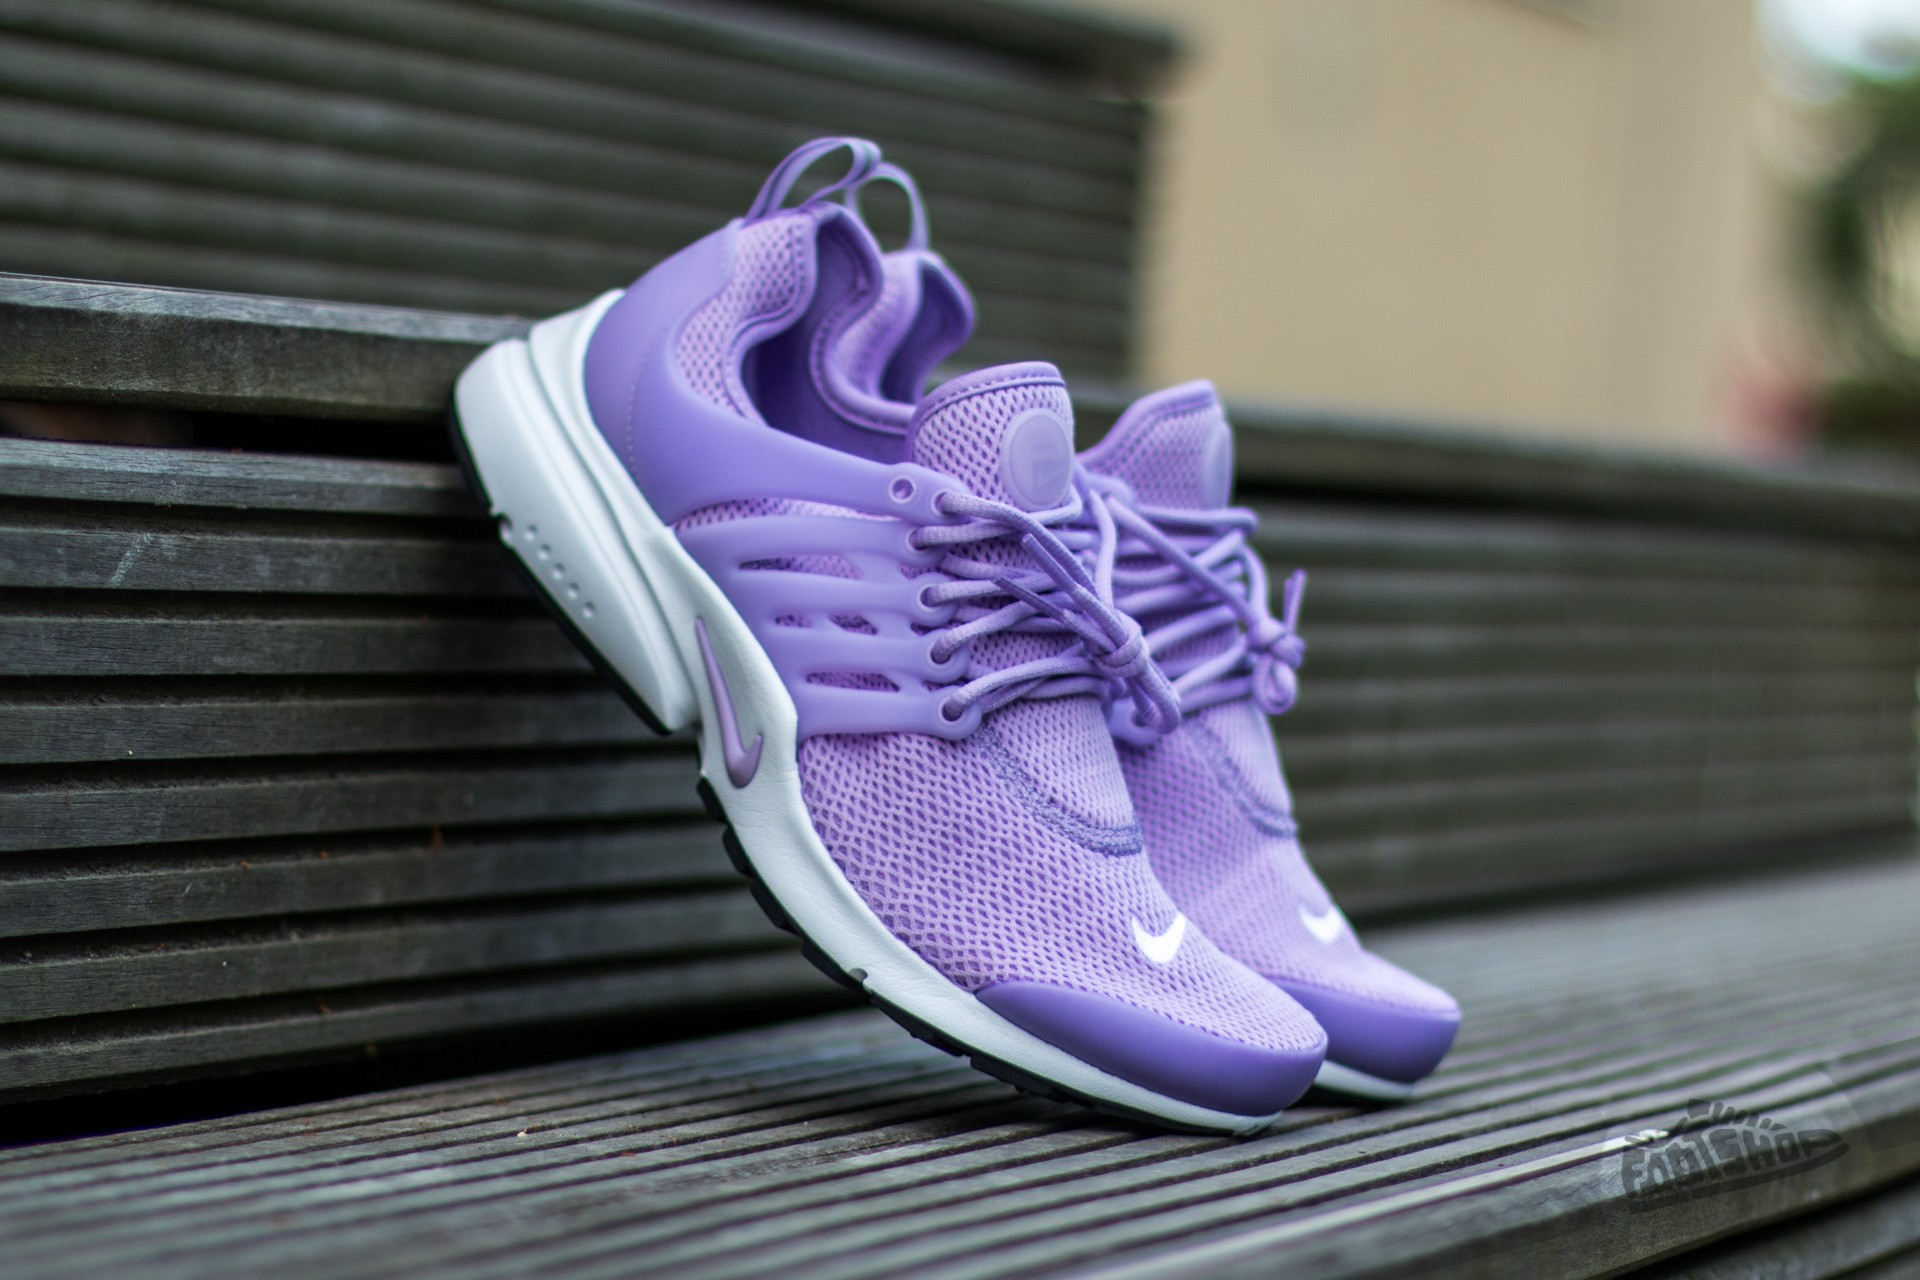 897923c6940 Nike W Air Presto Urban Lilac  White-Black